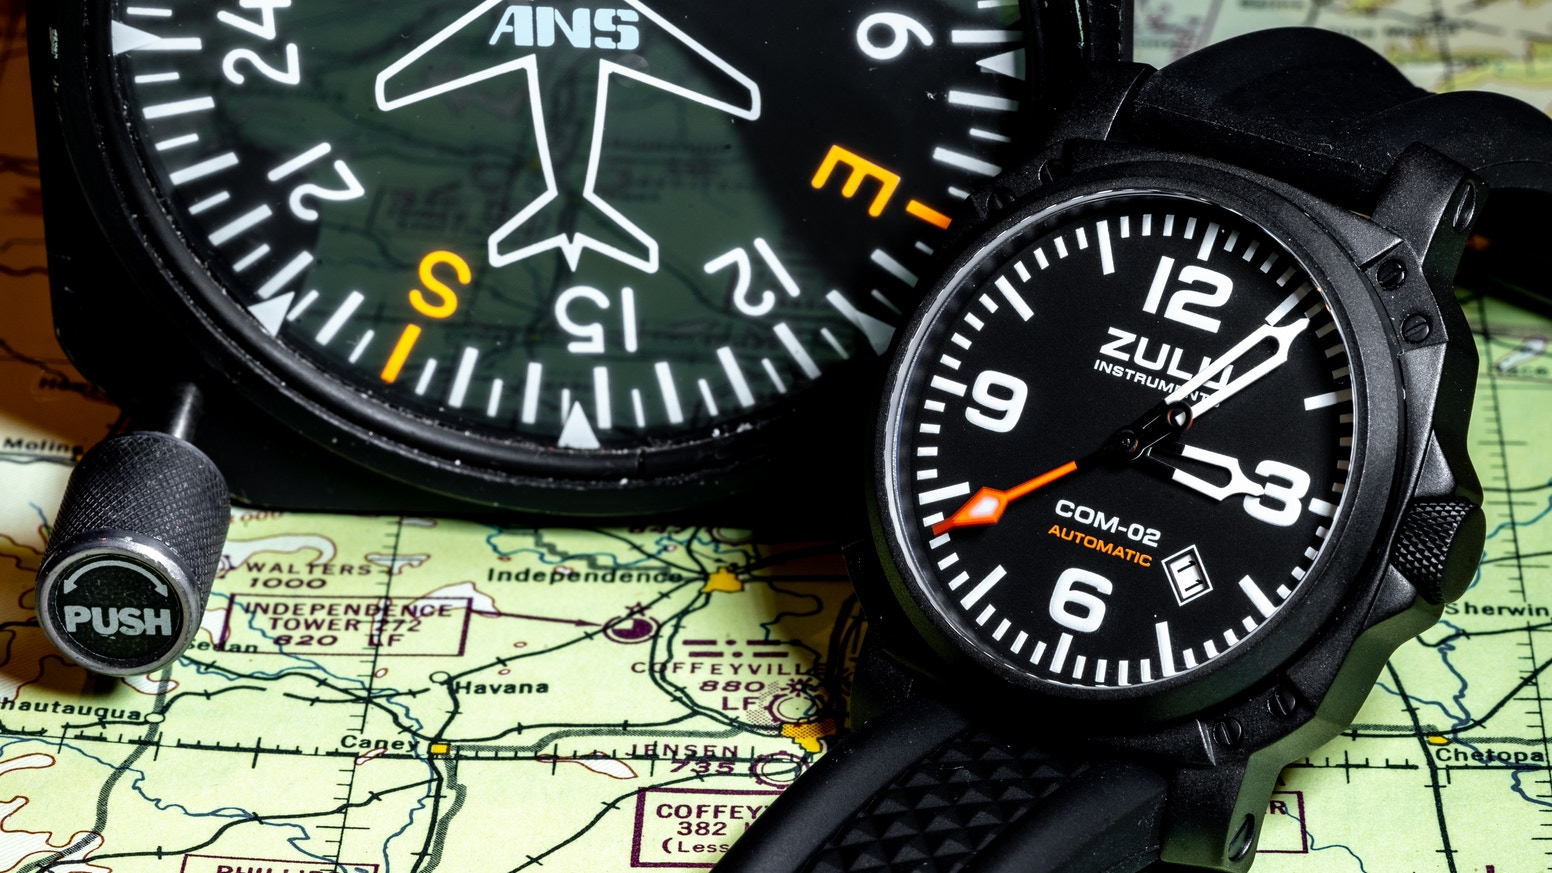 A new benchmark of quality Aviation Inspired Pilot Watches combined with the technology and value watch enthusiasts will appreciate!